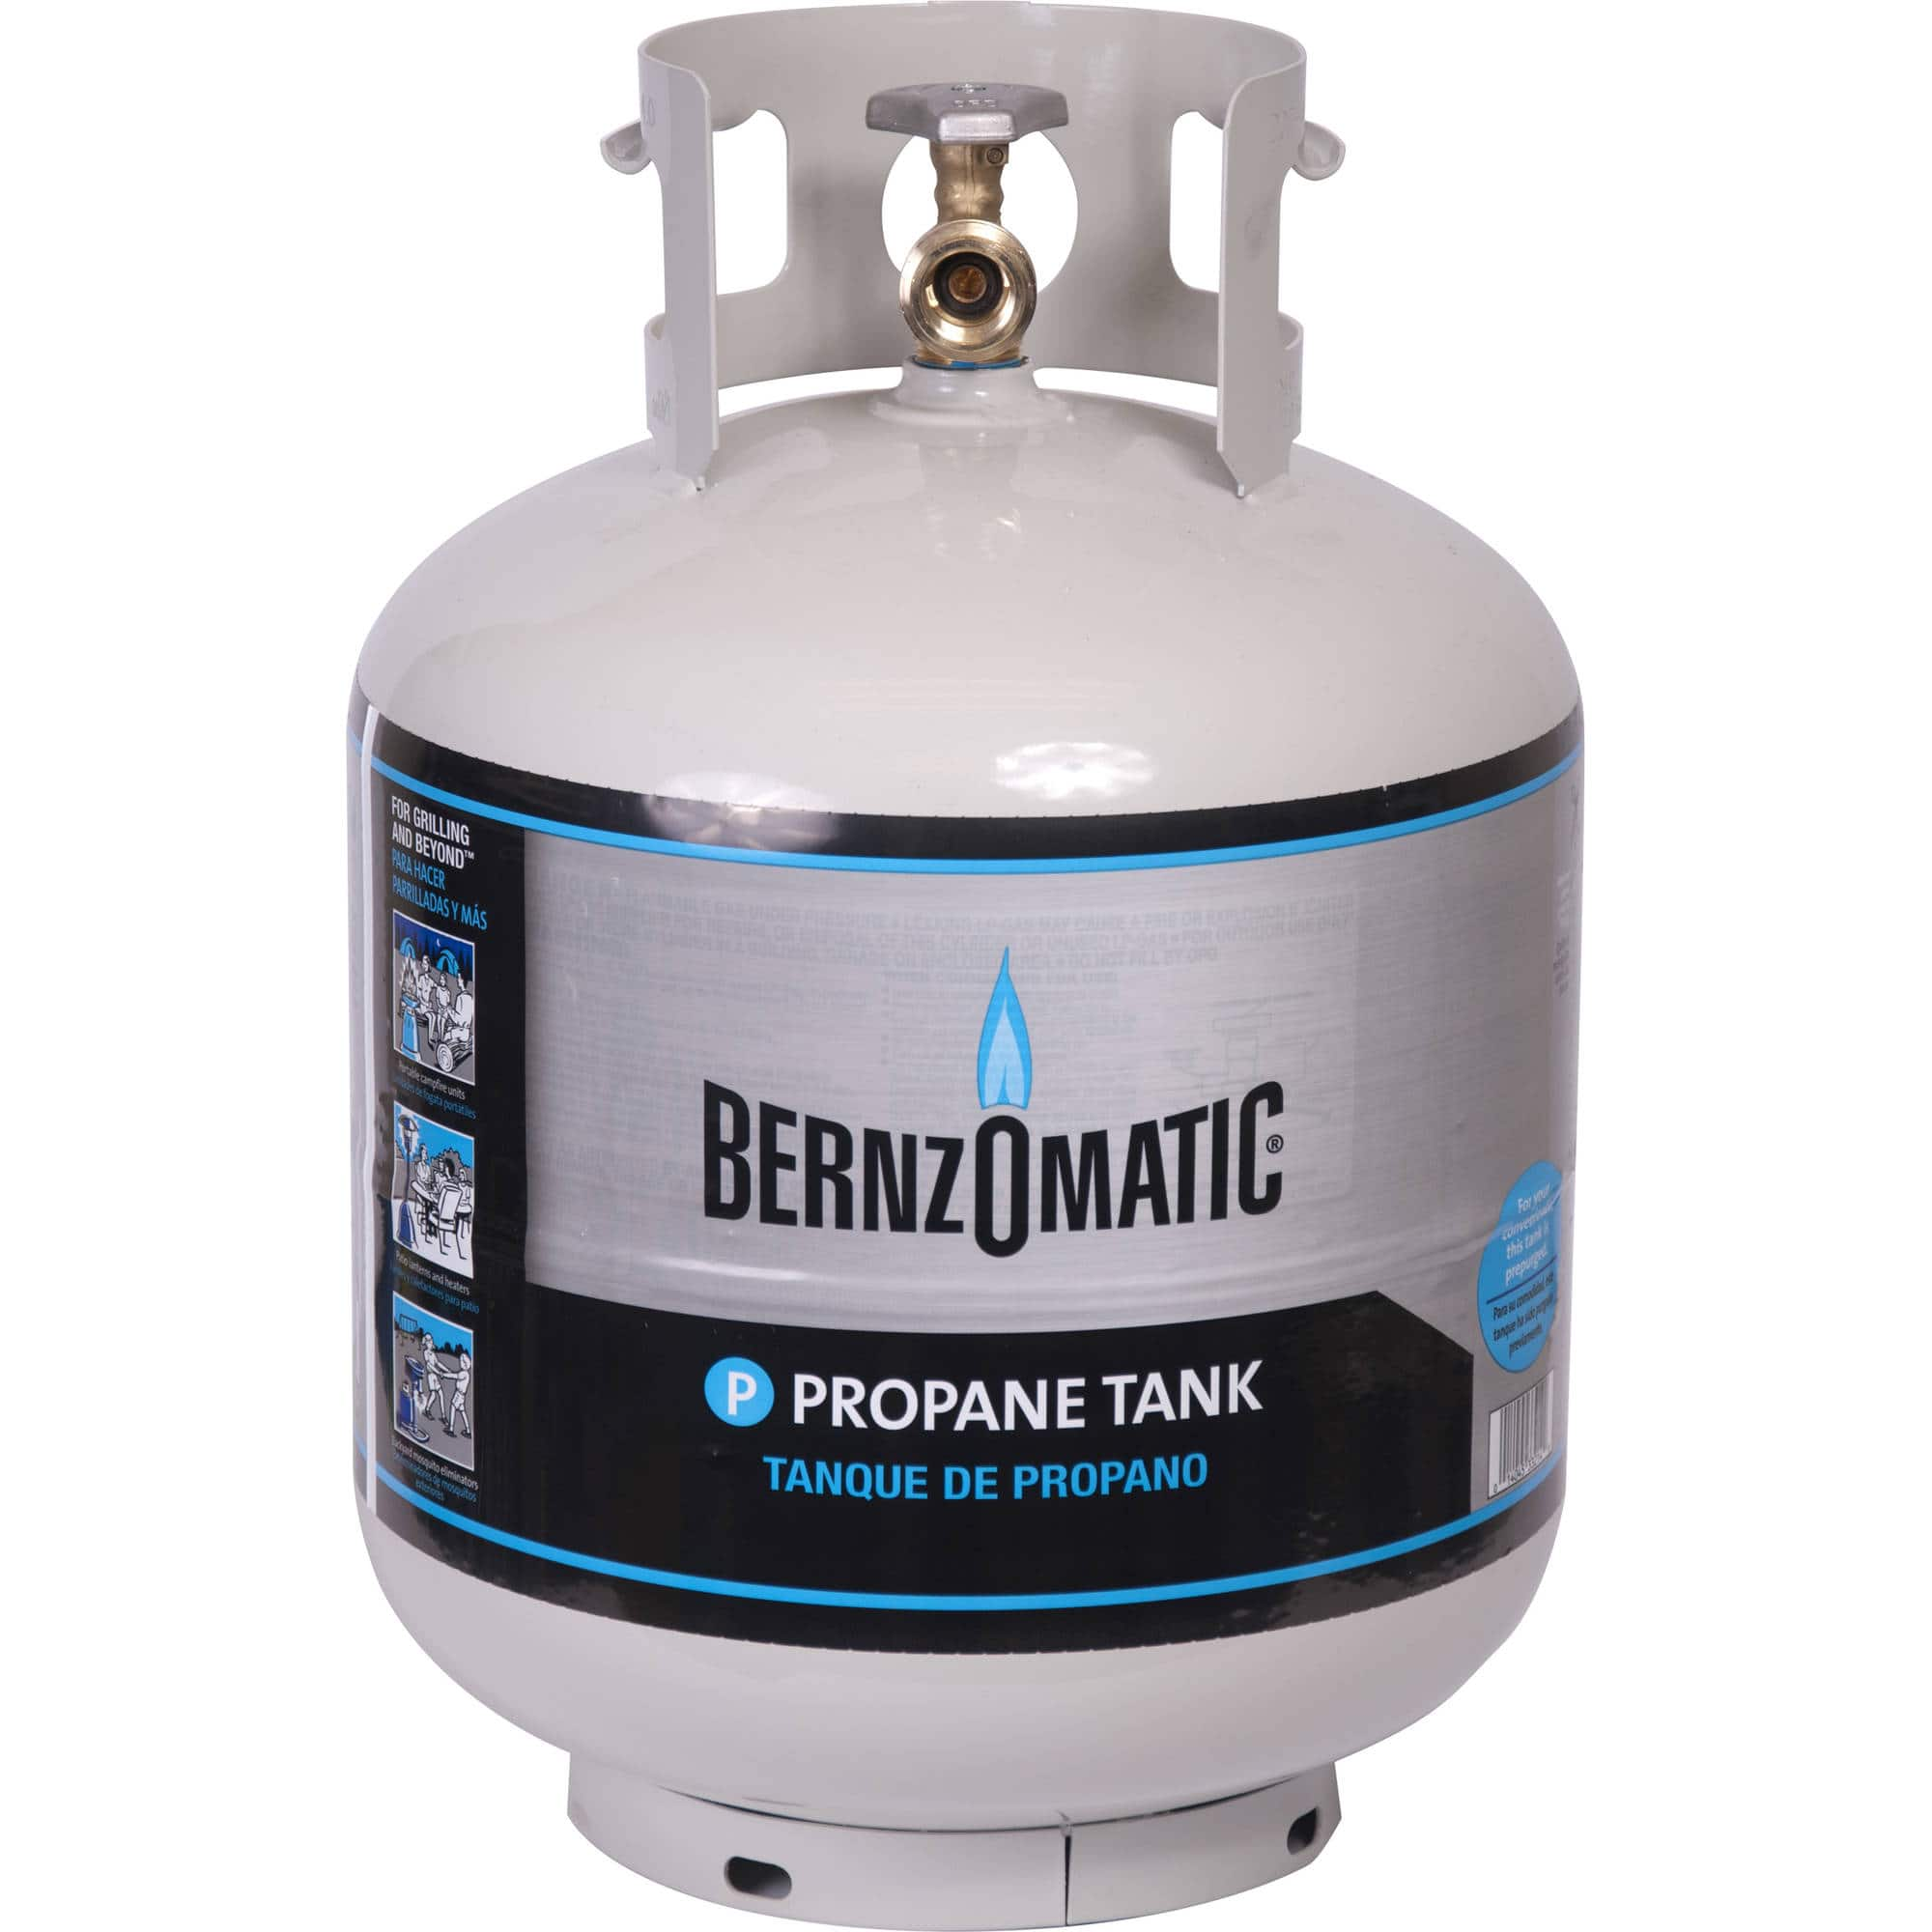 20lb propane tank $21 at Wal-Mart for BBQ grills, patio heaters, RVs, etc - YMMV